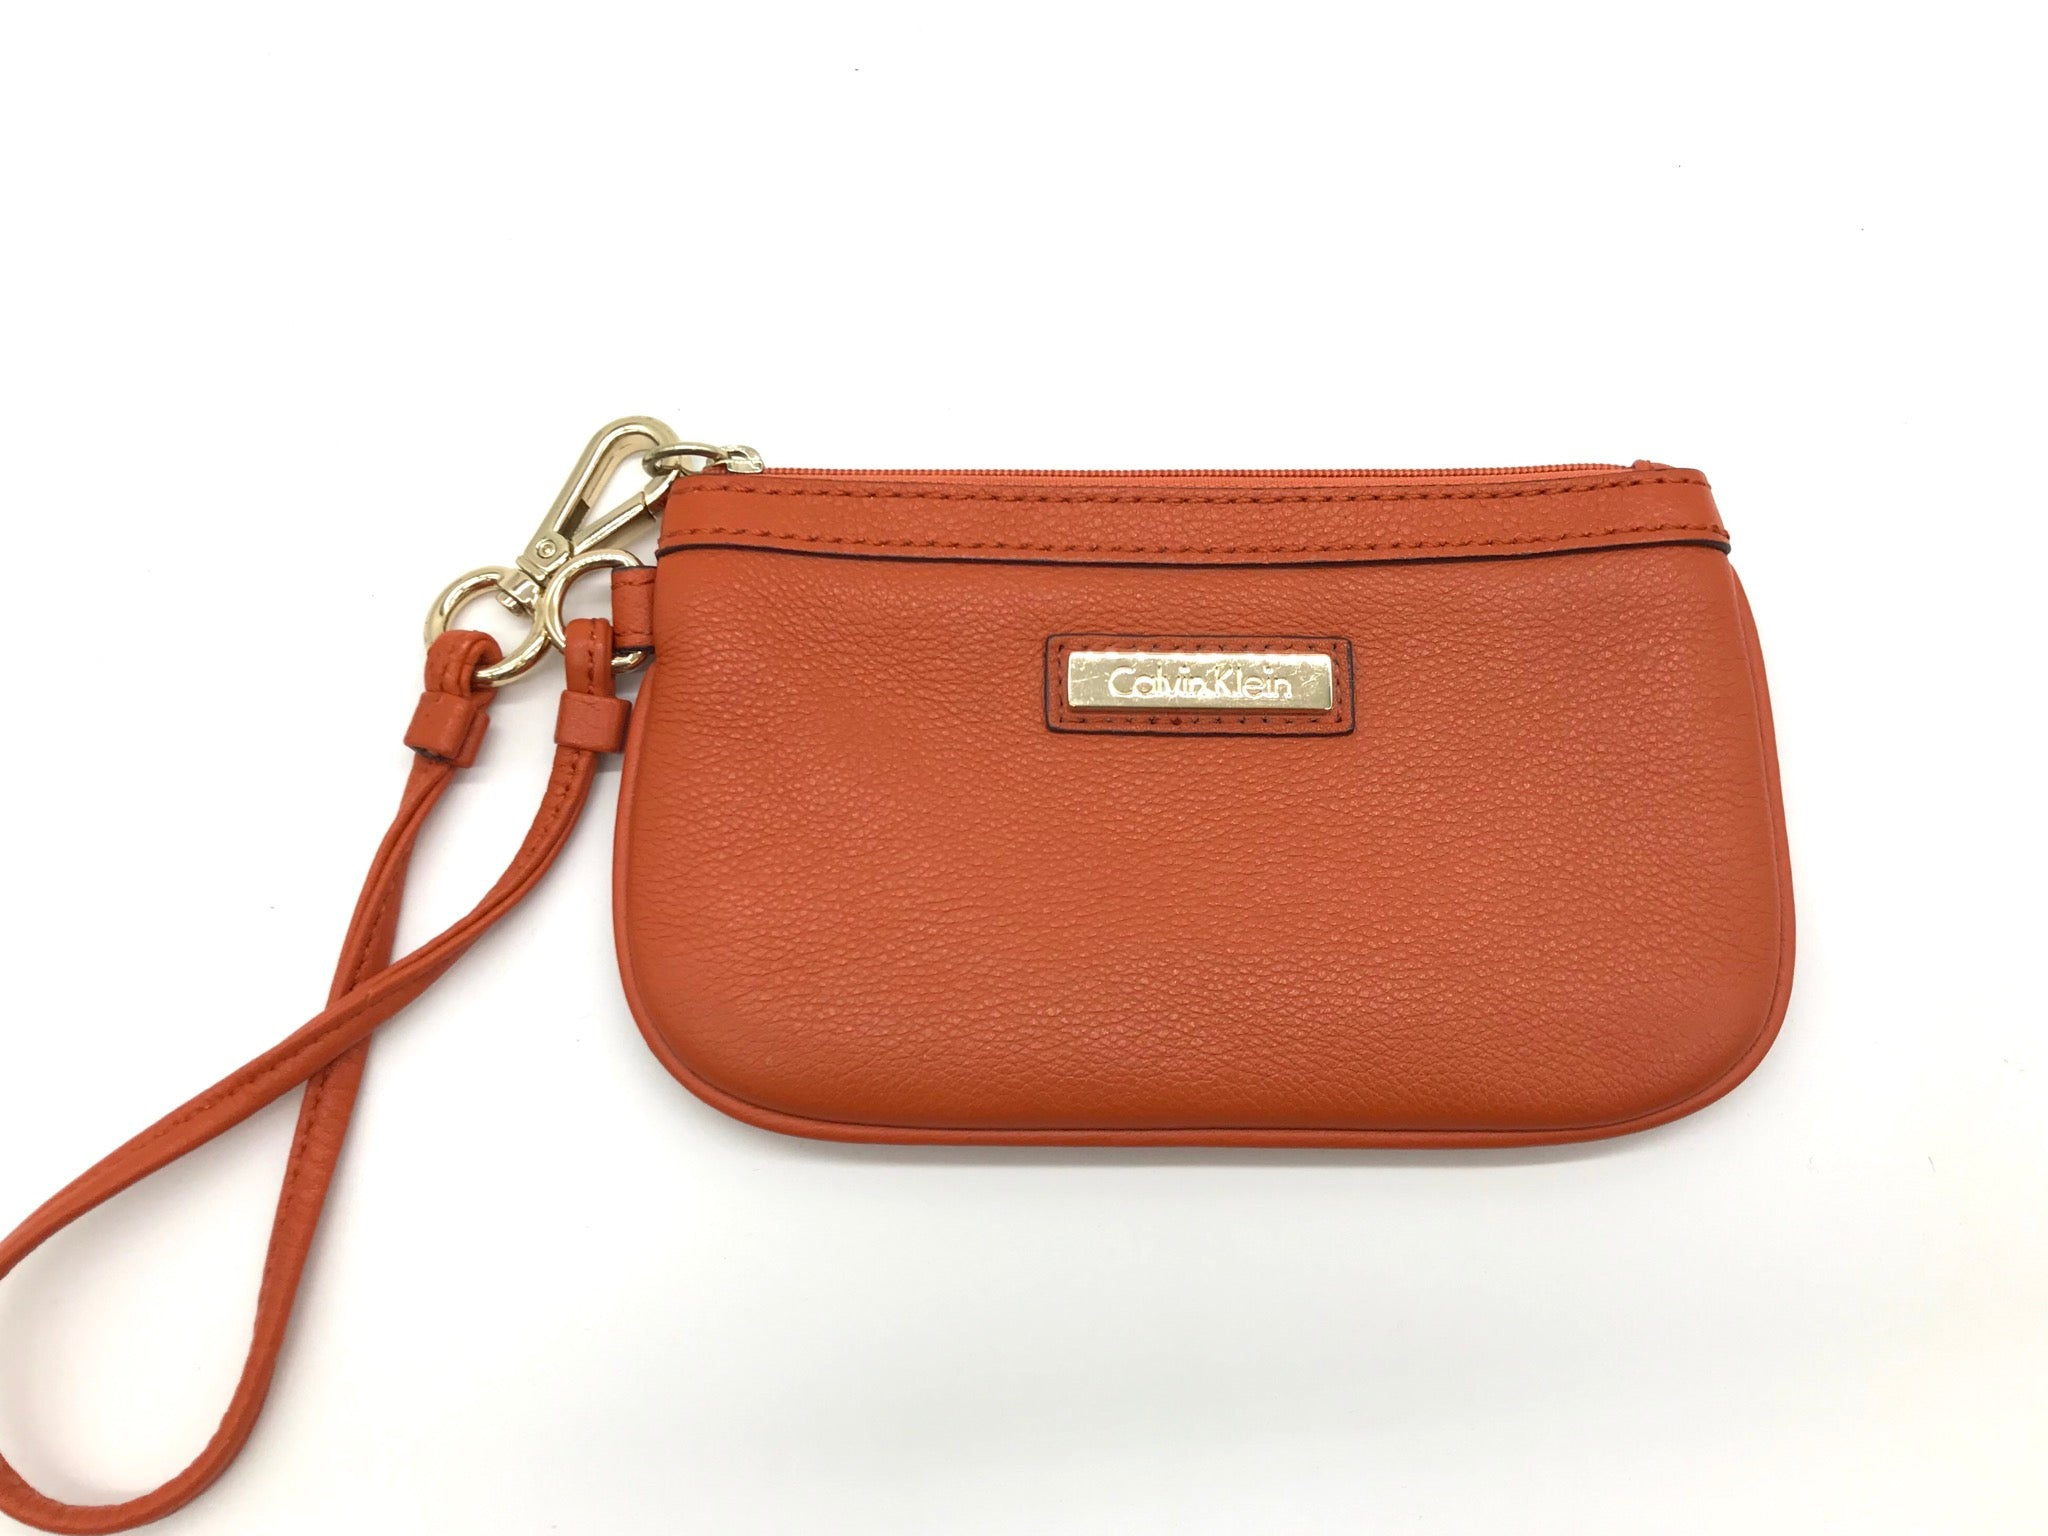 Primary Photo - BRAND: CALVIN KLEIN <BR>STYLE: COIN PURSE <BR>COLOR: ORANGE <BR>SIZE: MEDIUM <BR>SKU: 262-26241-40331<BR>AS IS